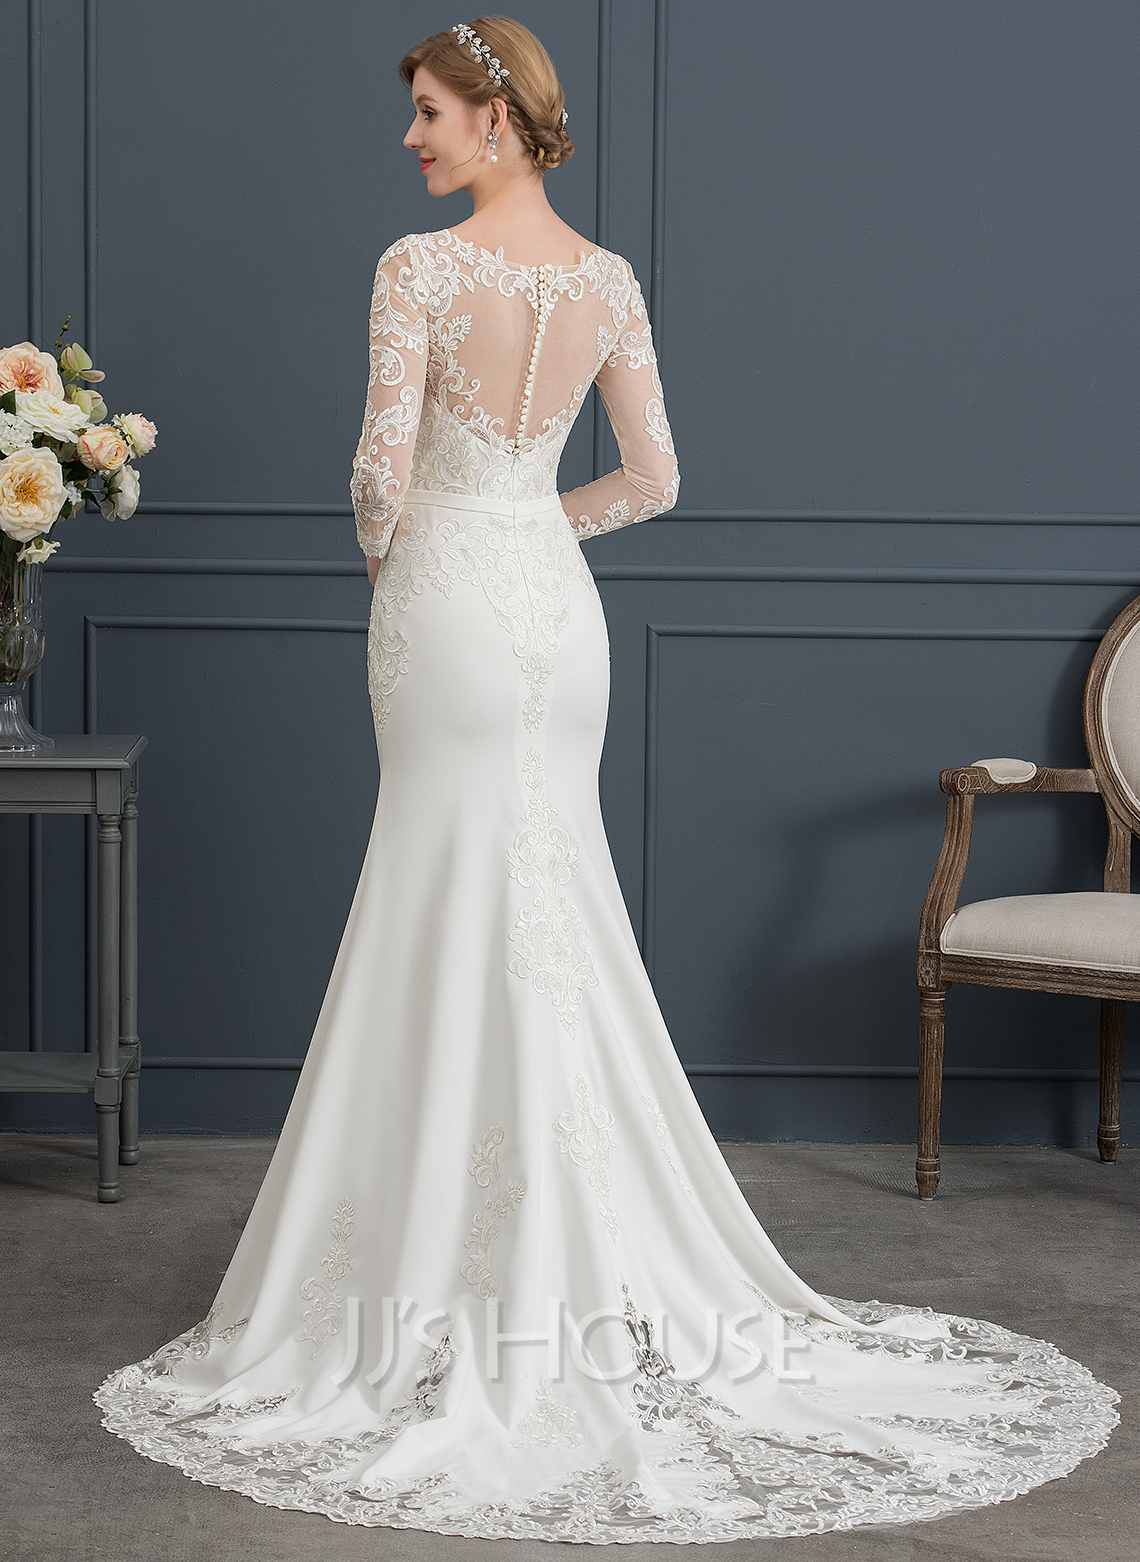 Trumpet/Mermaid Illusion Chapel Train Stretch Crepe Wedding Dress With Lace